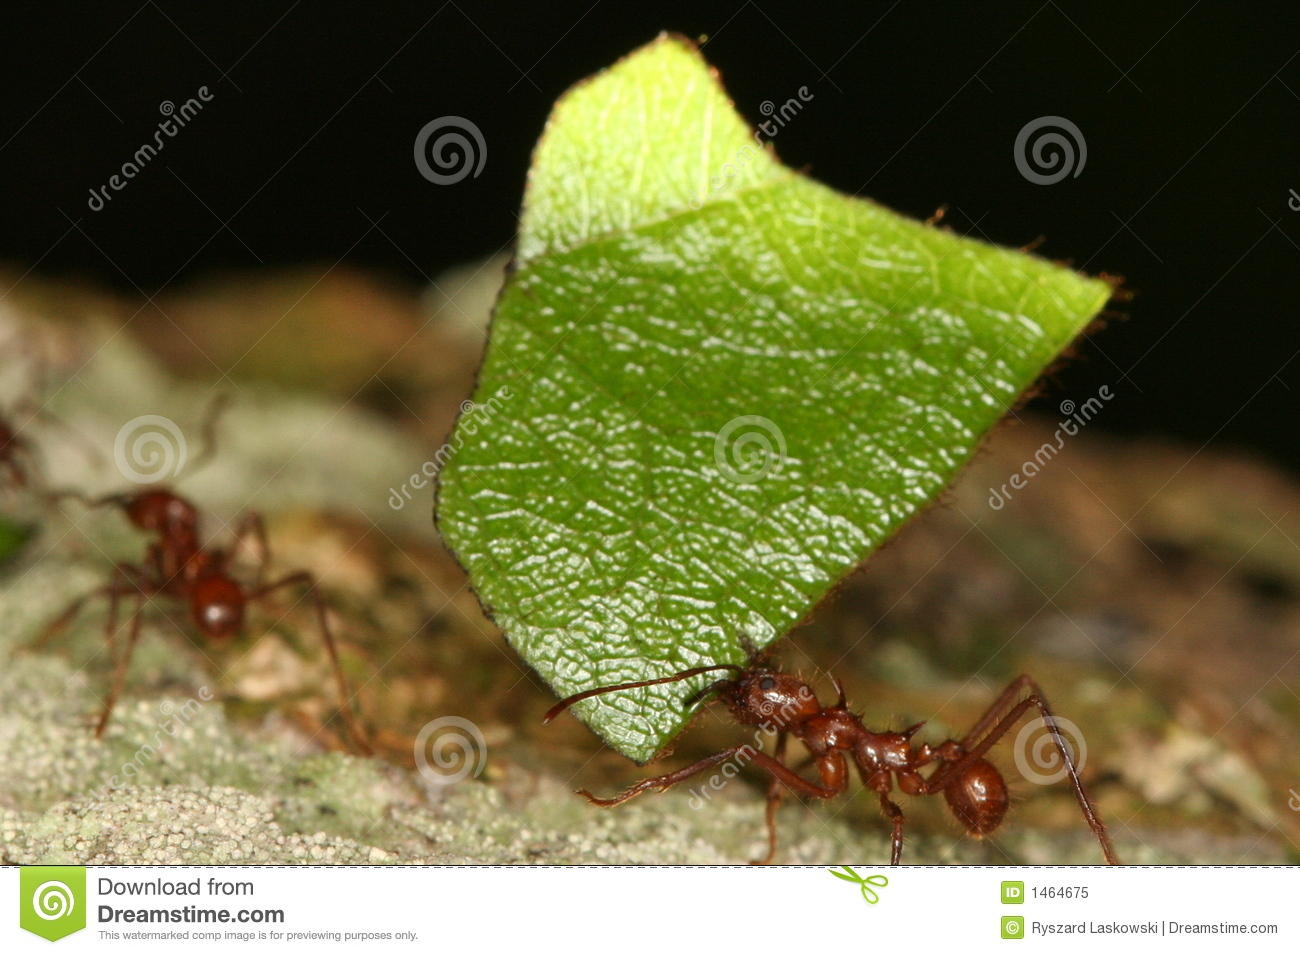 ants essay The invasion of fire ants biology essay sebastian wernecke ecology spring 2013 dr dollar ecological impacts due to the invasion of fire ants (solenopsis invicta) into new territories.